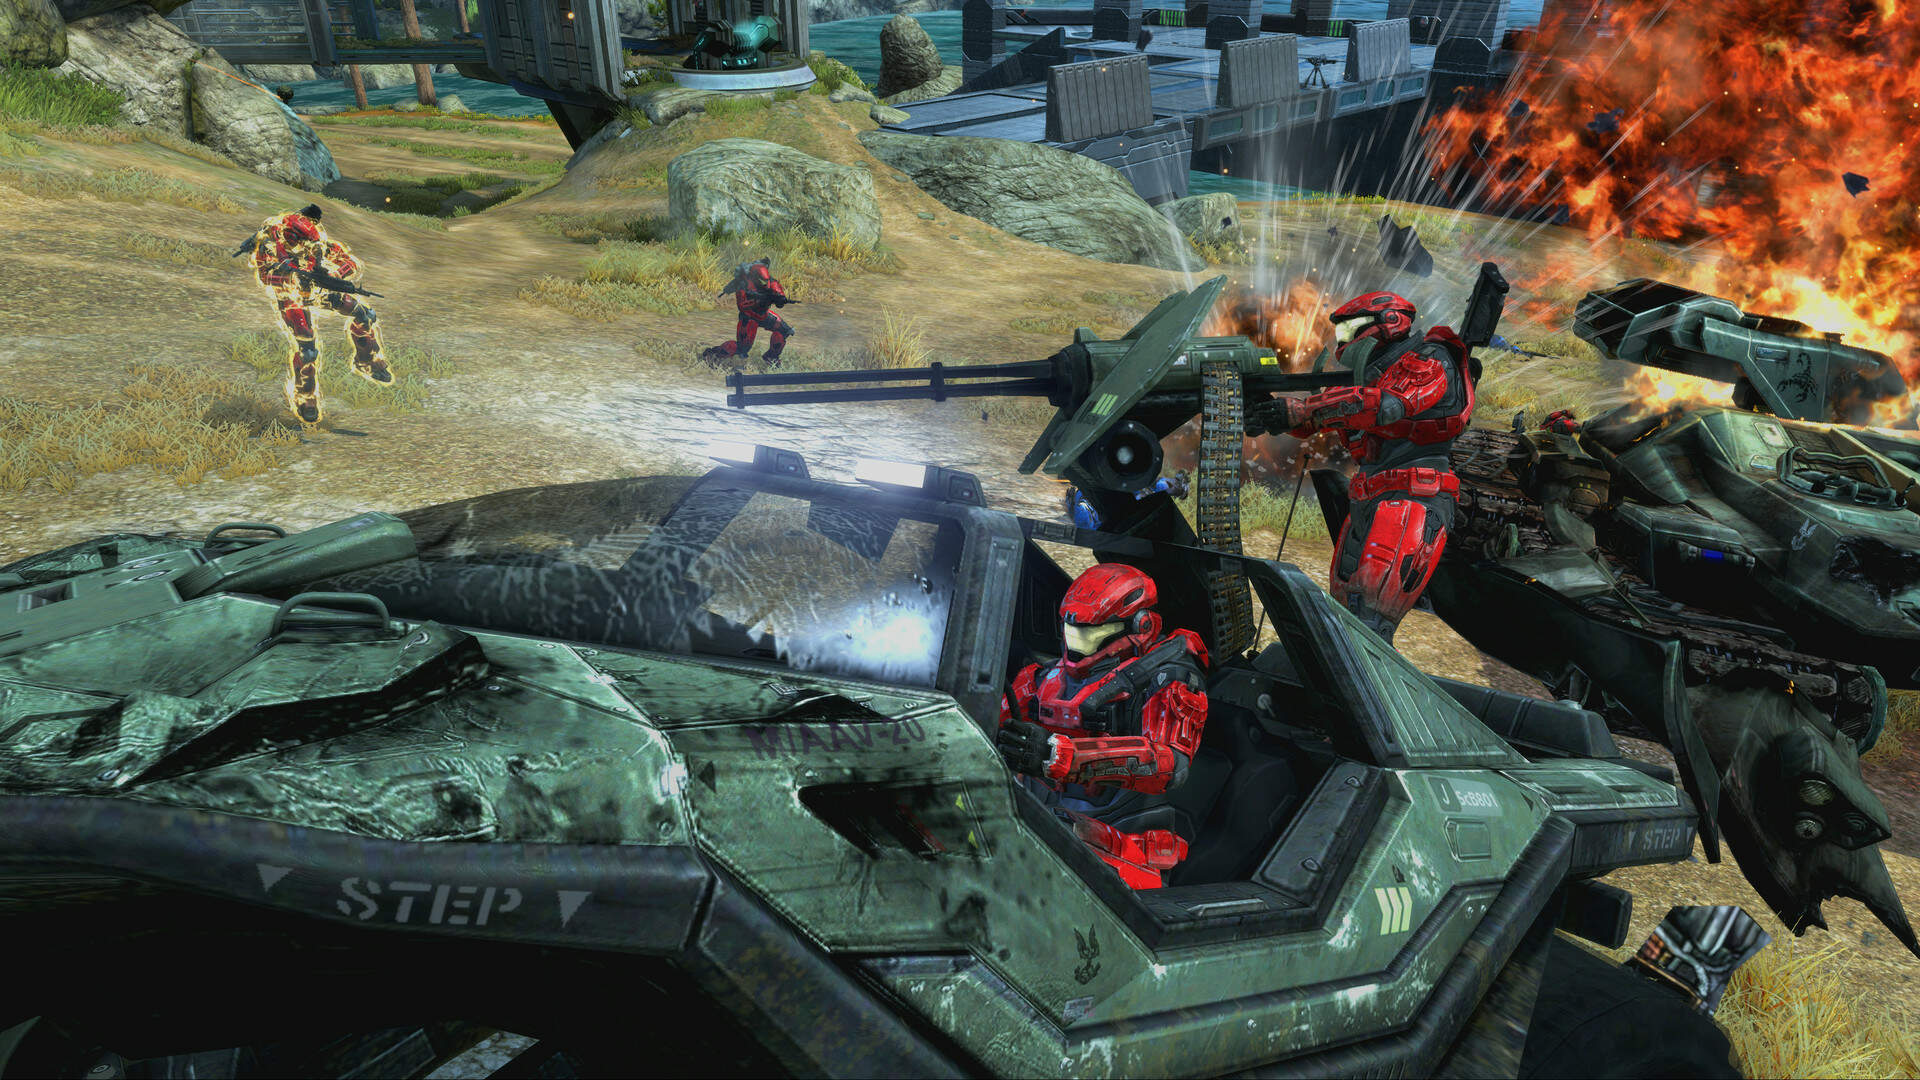 Halo Reach: Where to Find the Hidden Binary Signature and Complete the 'I'm Sorry Dave' Achievement